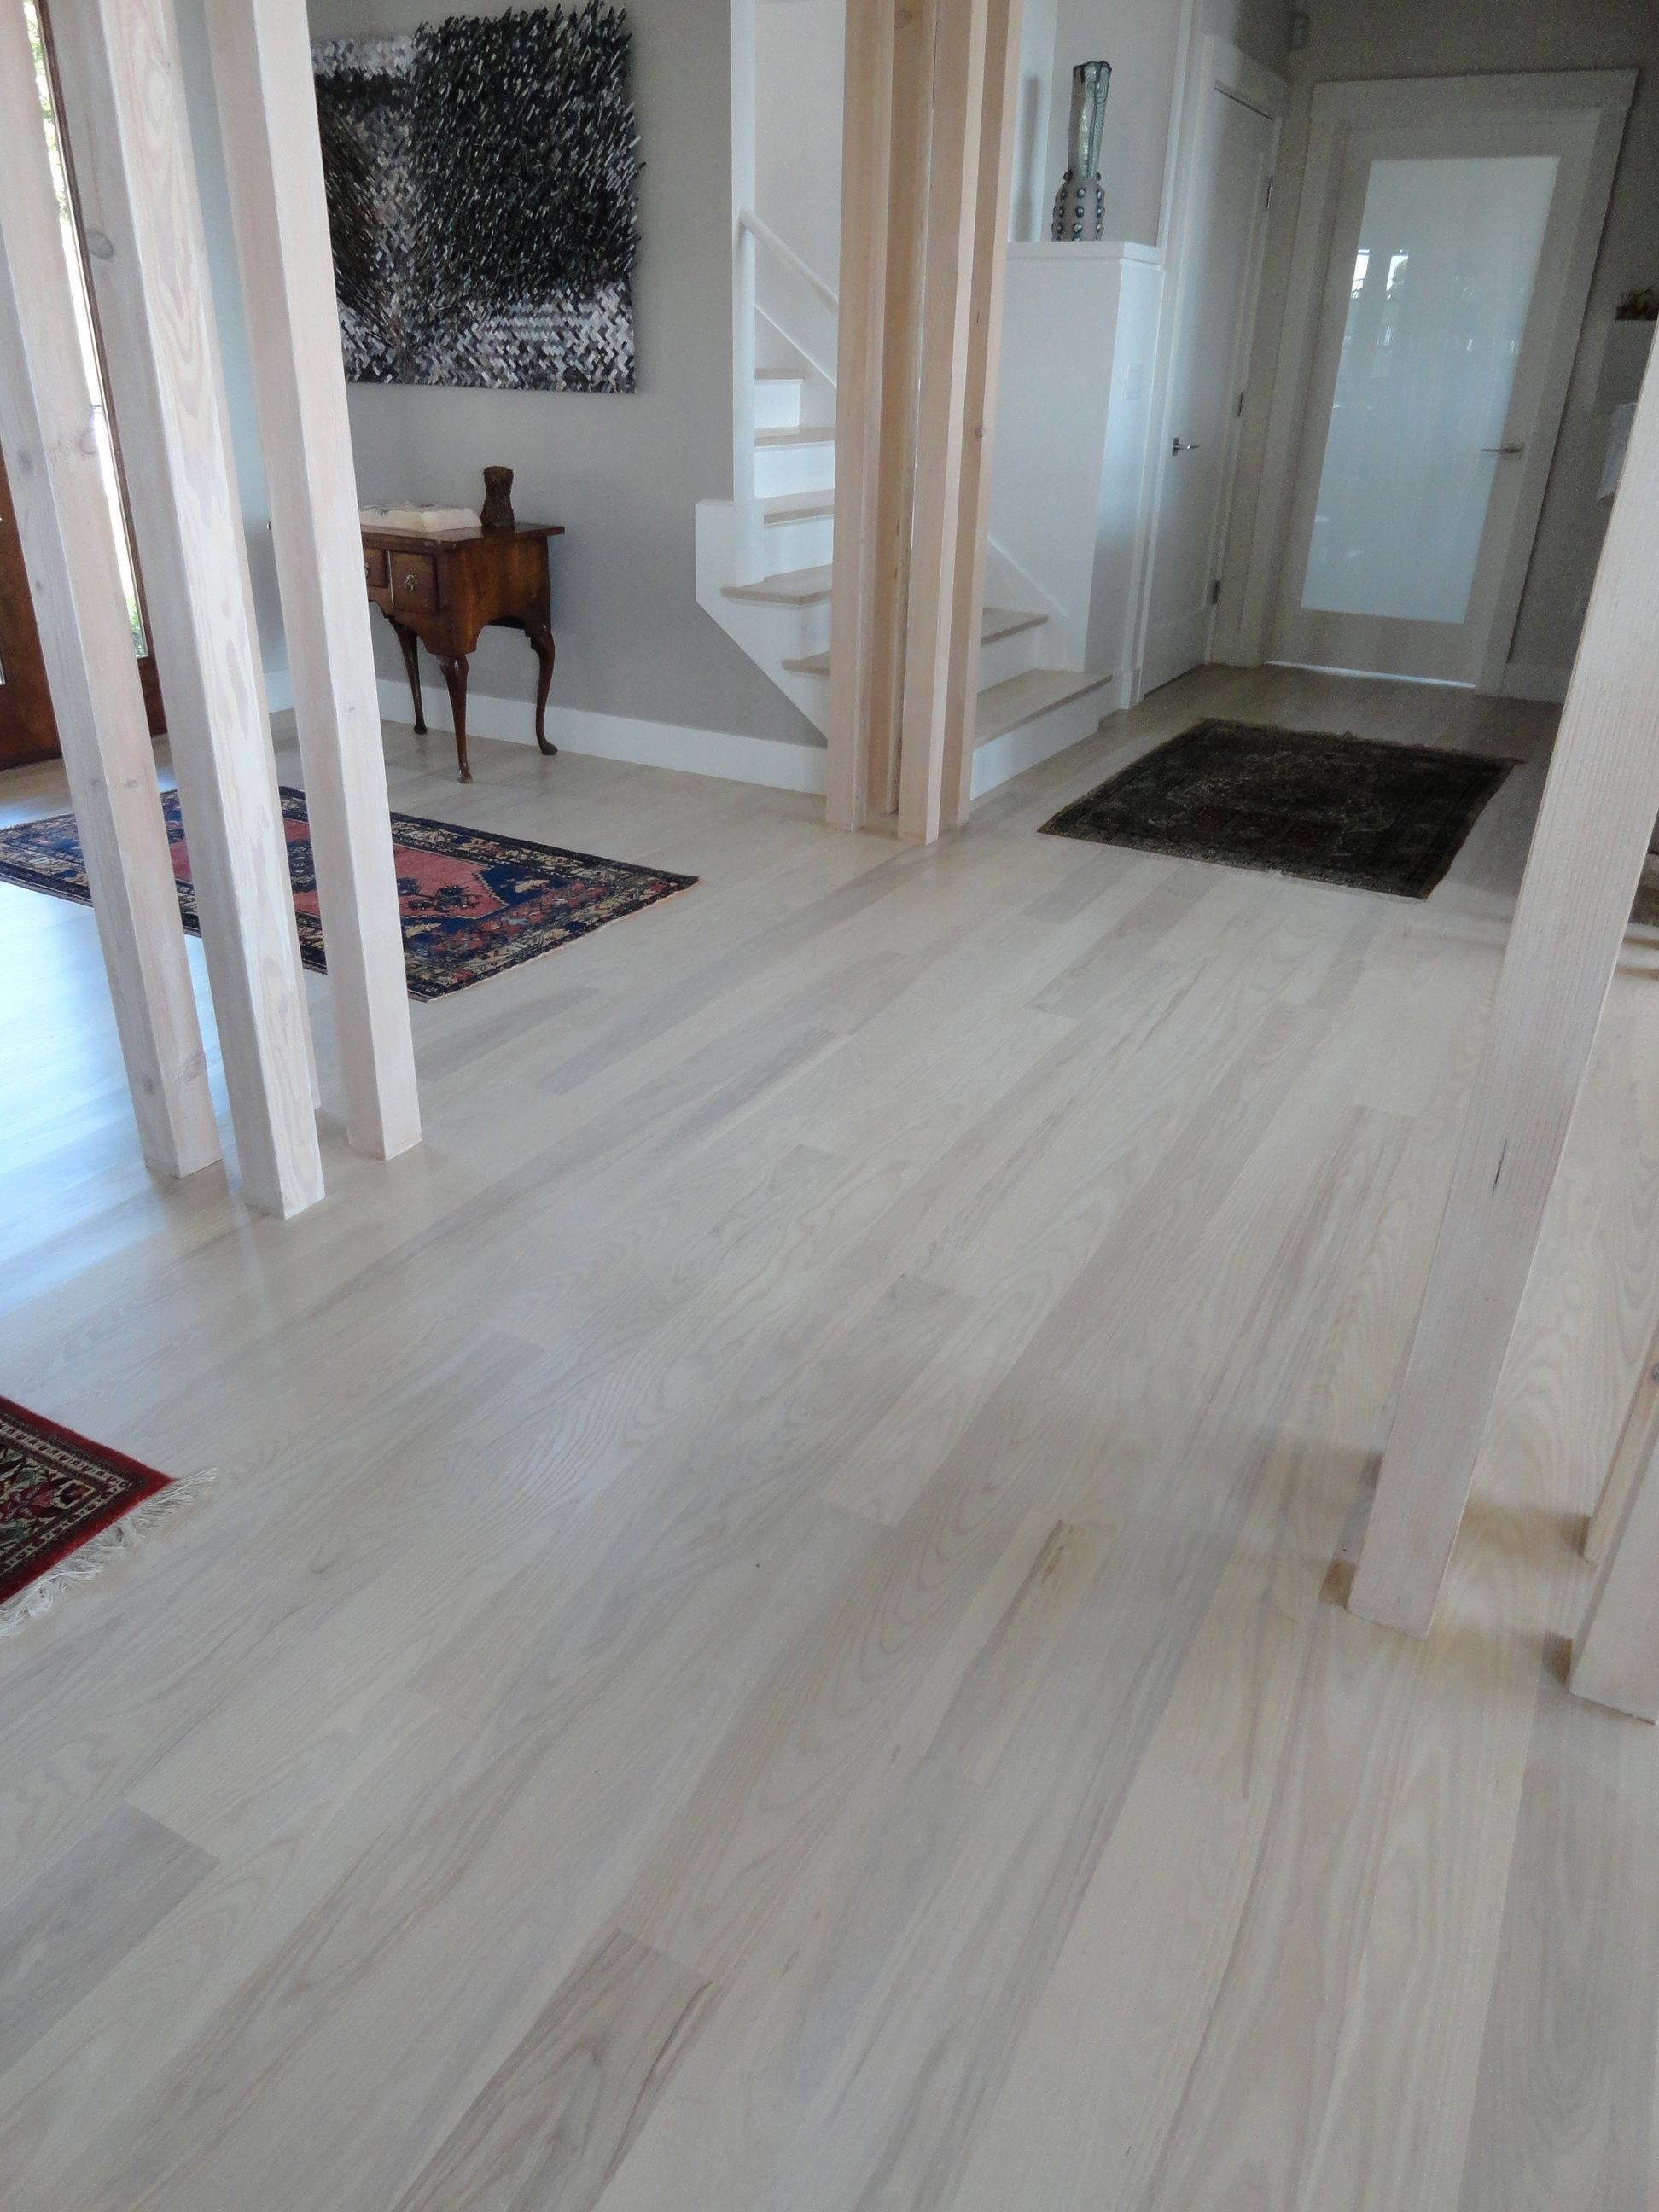 White Washed Wood Floor Meets Home with Industrial Style | HomesFeed